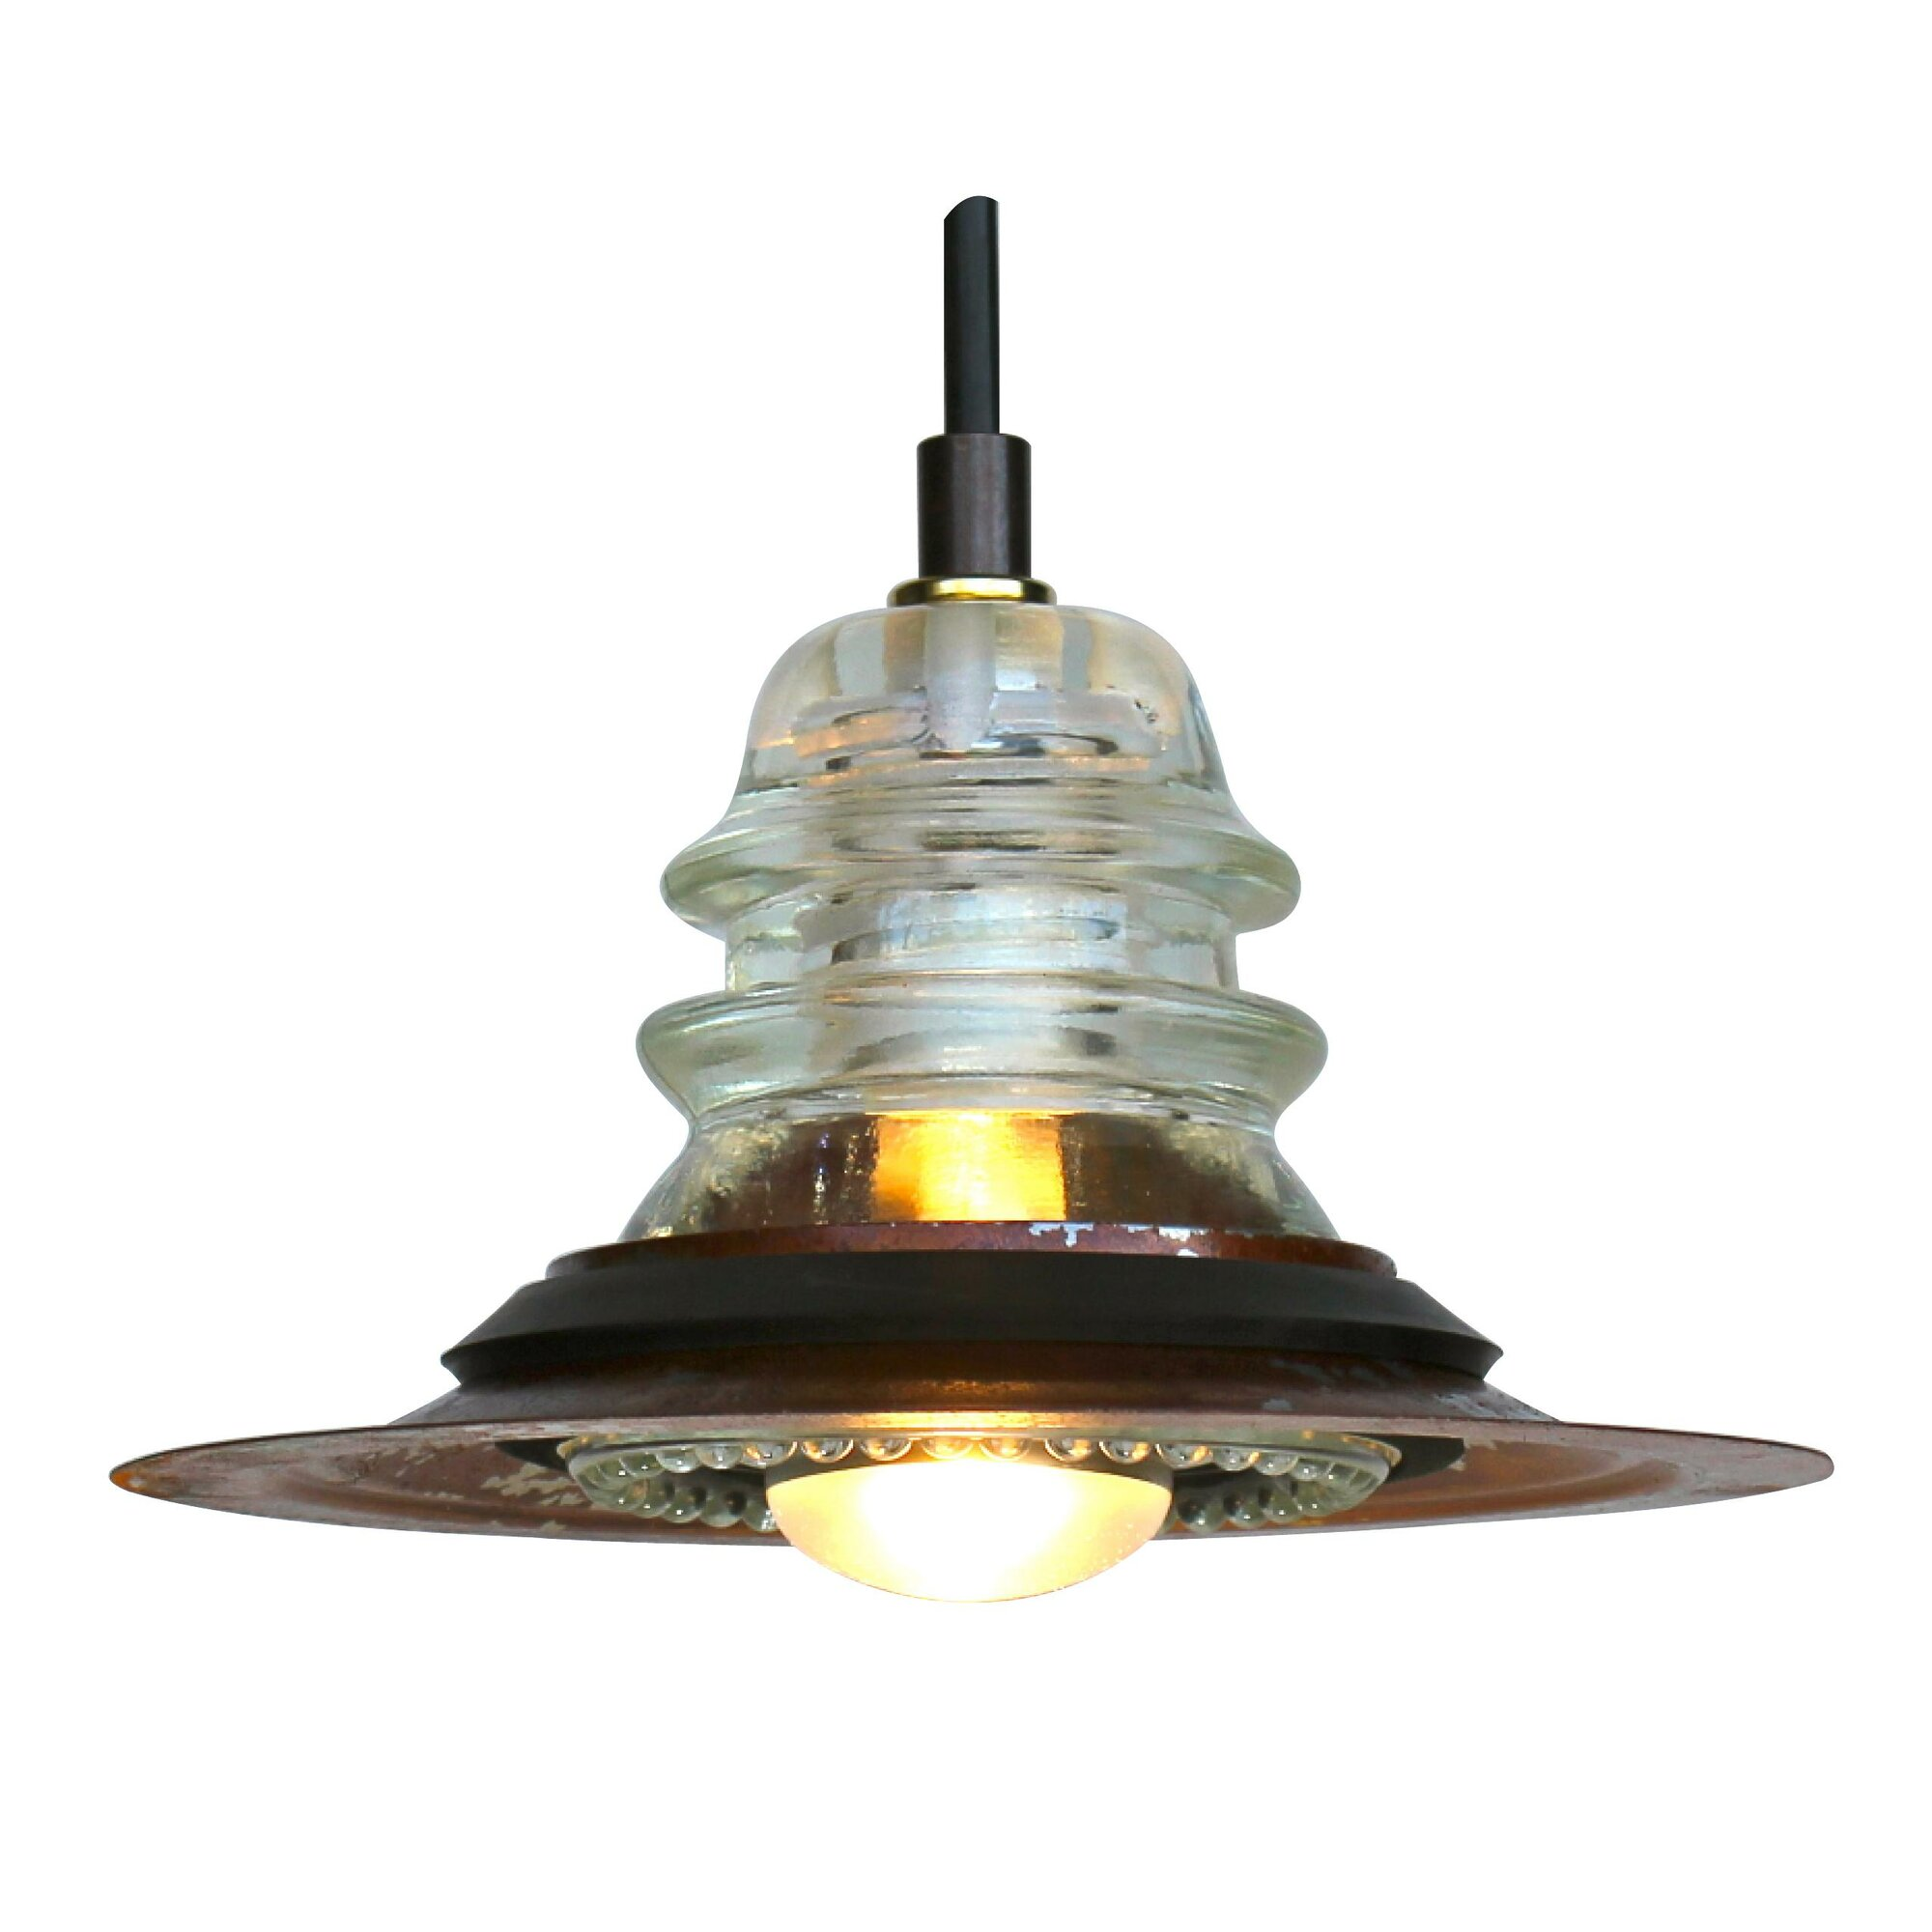 Railroadware insulator light pendant with 7 metal hood for Insulator pendant light